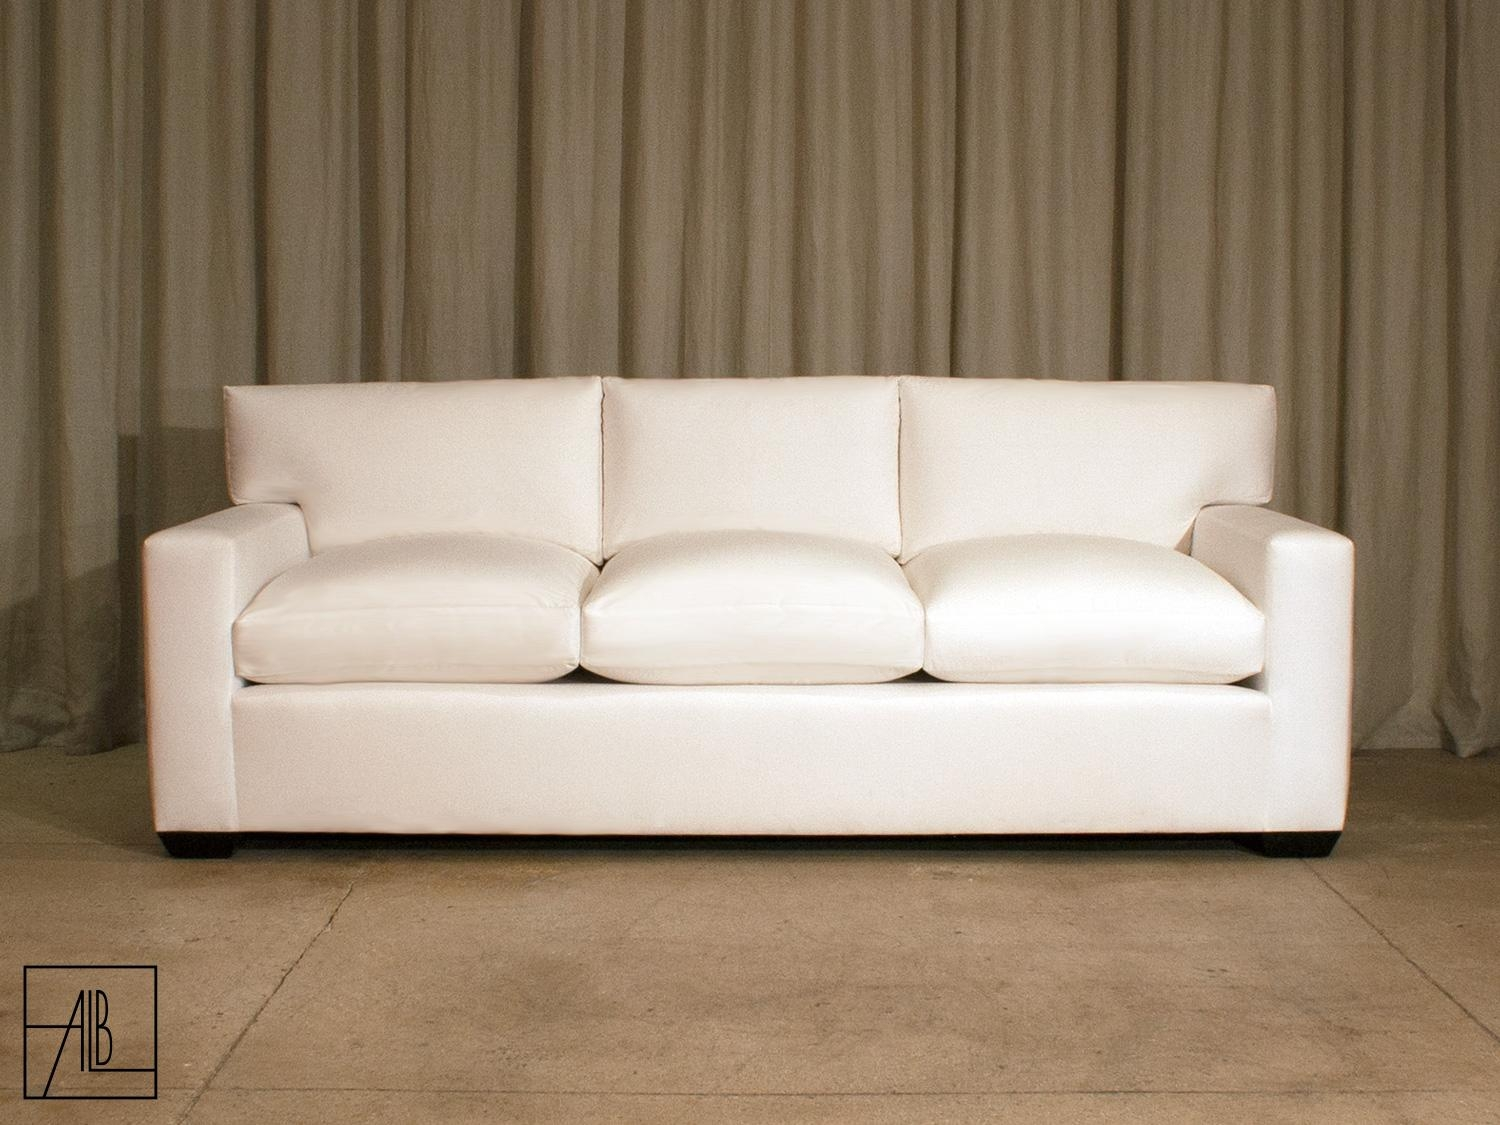 Jean Michel Frank Loose Pillow Back Sofa – Anthony Lawrence For Loose Pillow Back Sofas (Image 3 of 20)